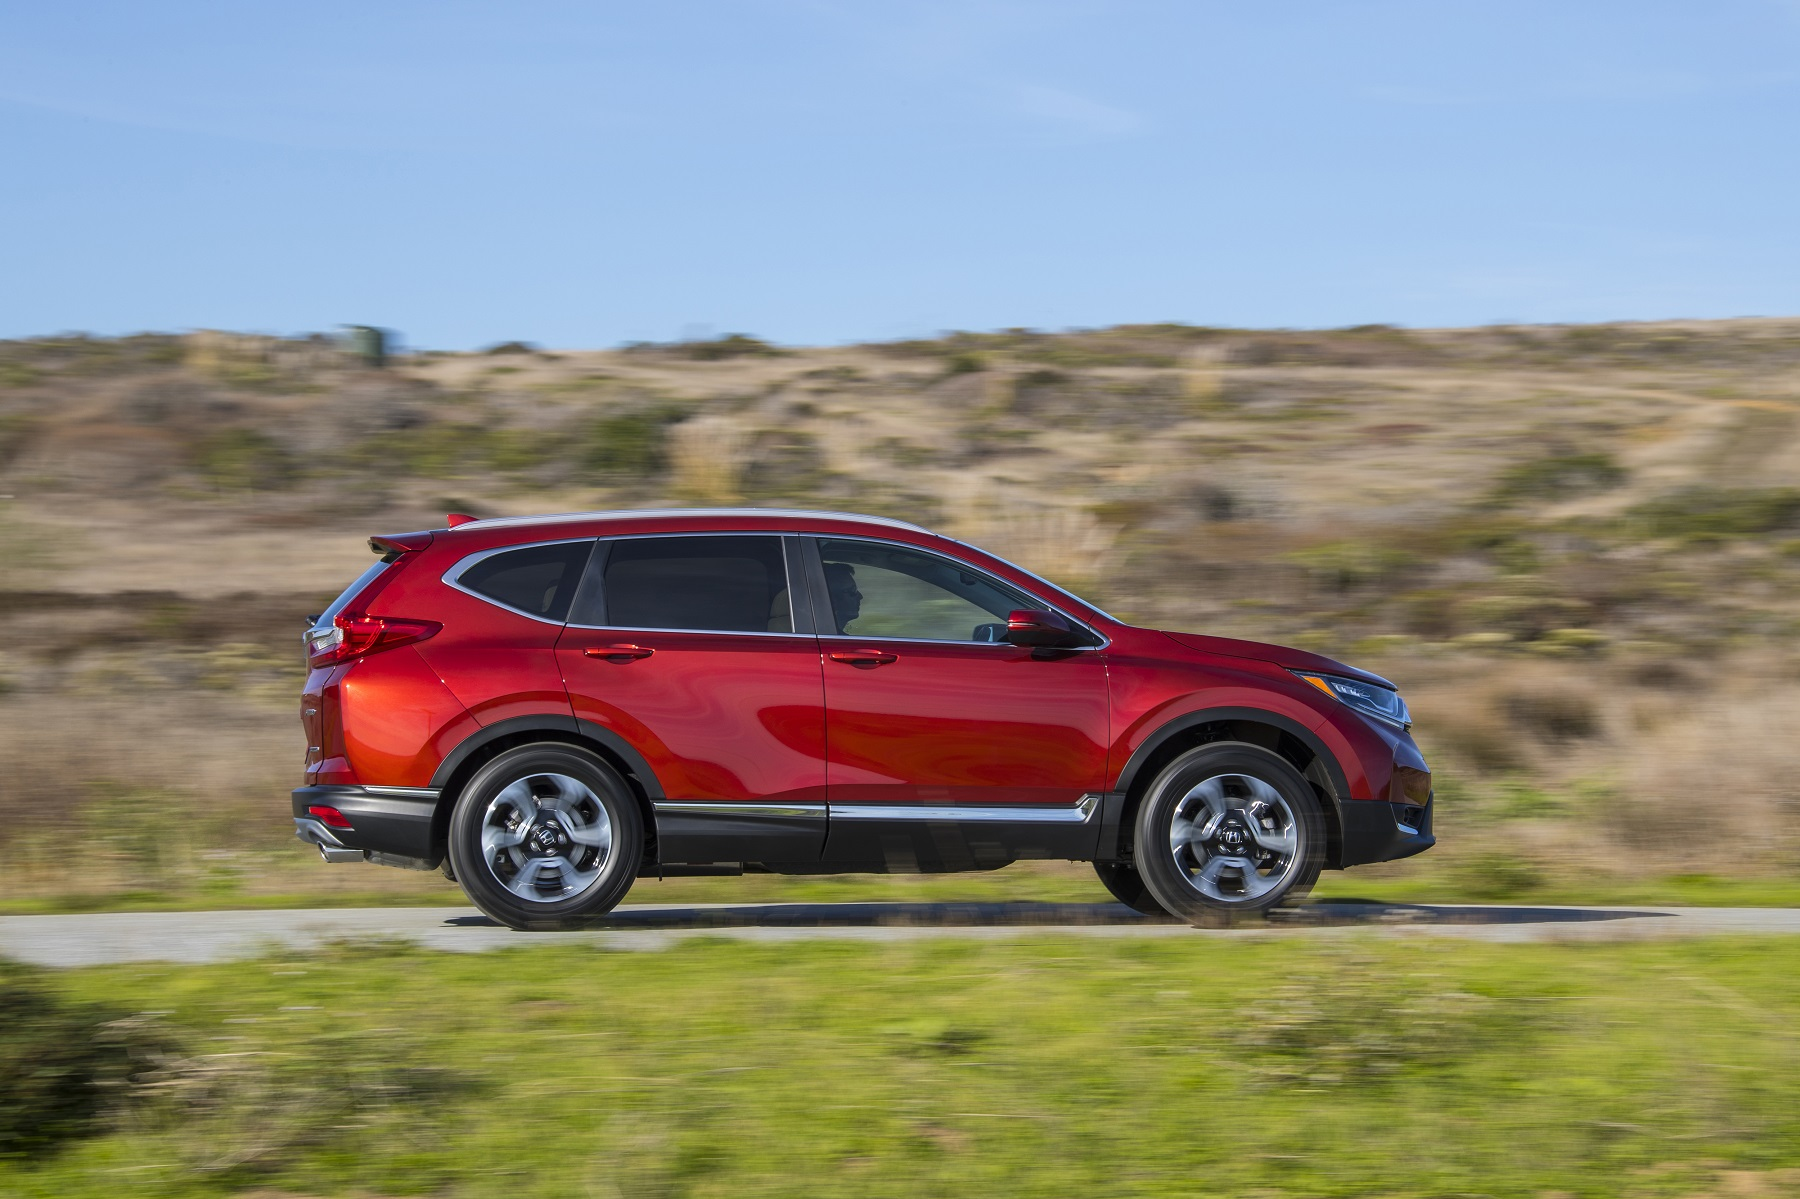 Manufacturer photo: The all-new body and chassis design in the 2017 CR-V provides more agile and confident handling, greater refinement, additional ground clearance and superior overall versatility